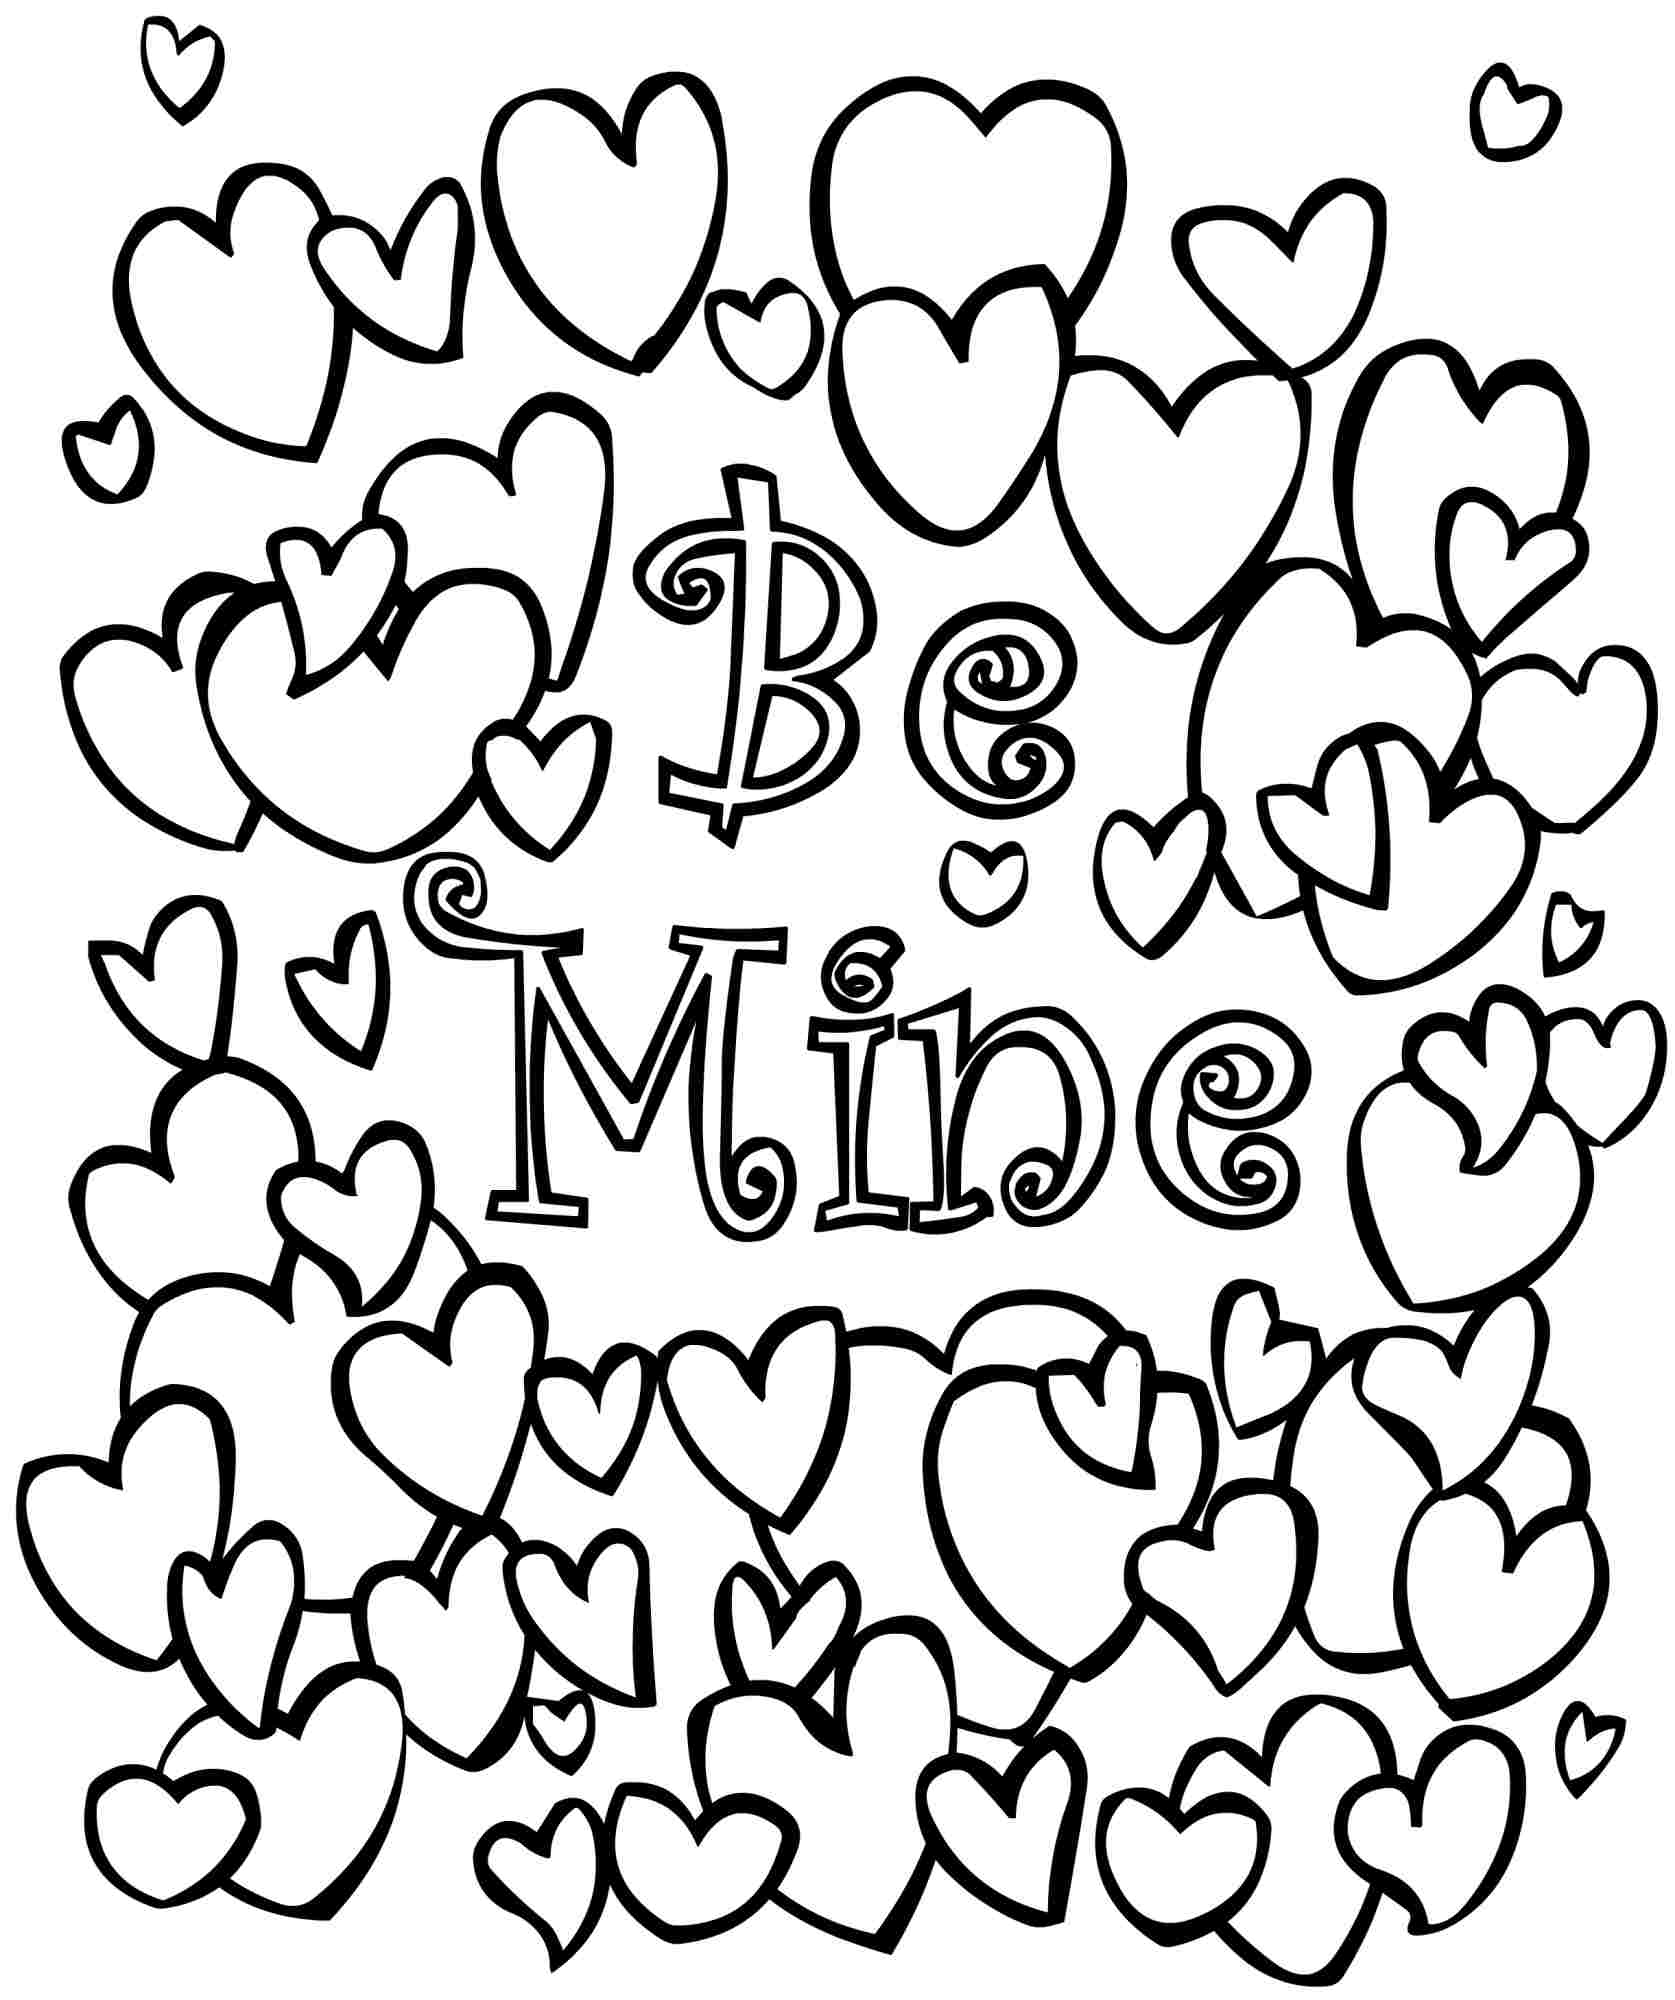 Valentines Printable Coloring Pages - Valentines Coloring Pages Printable Remarkable Valentine to Collection